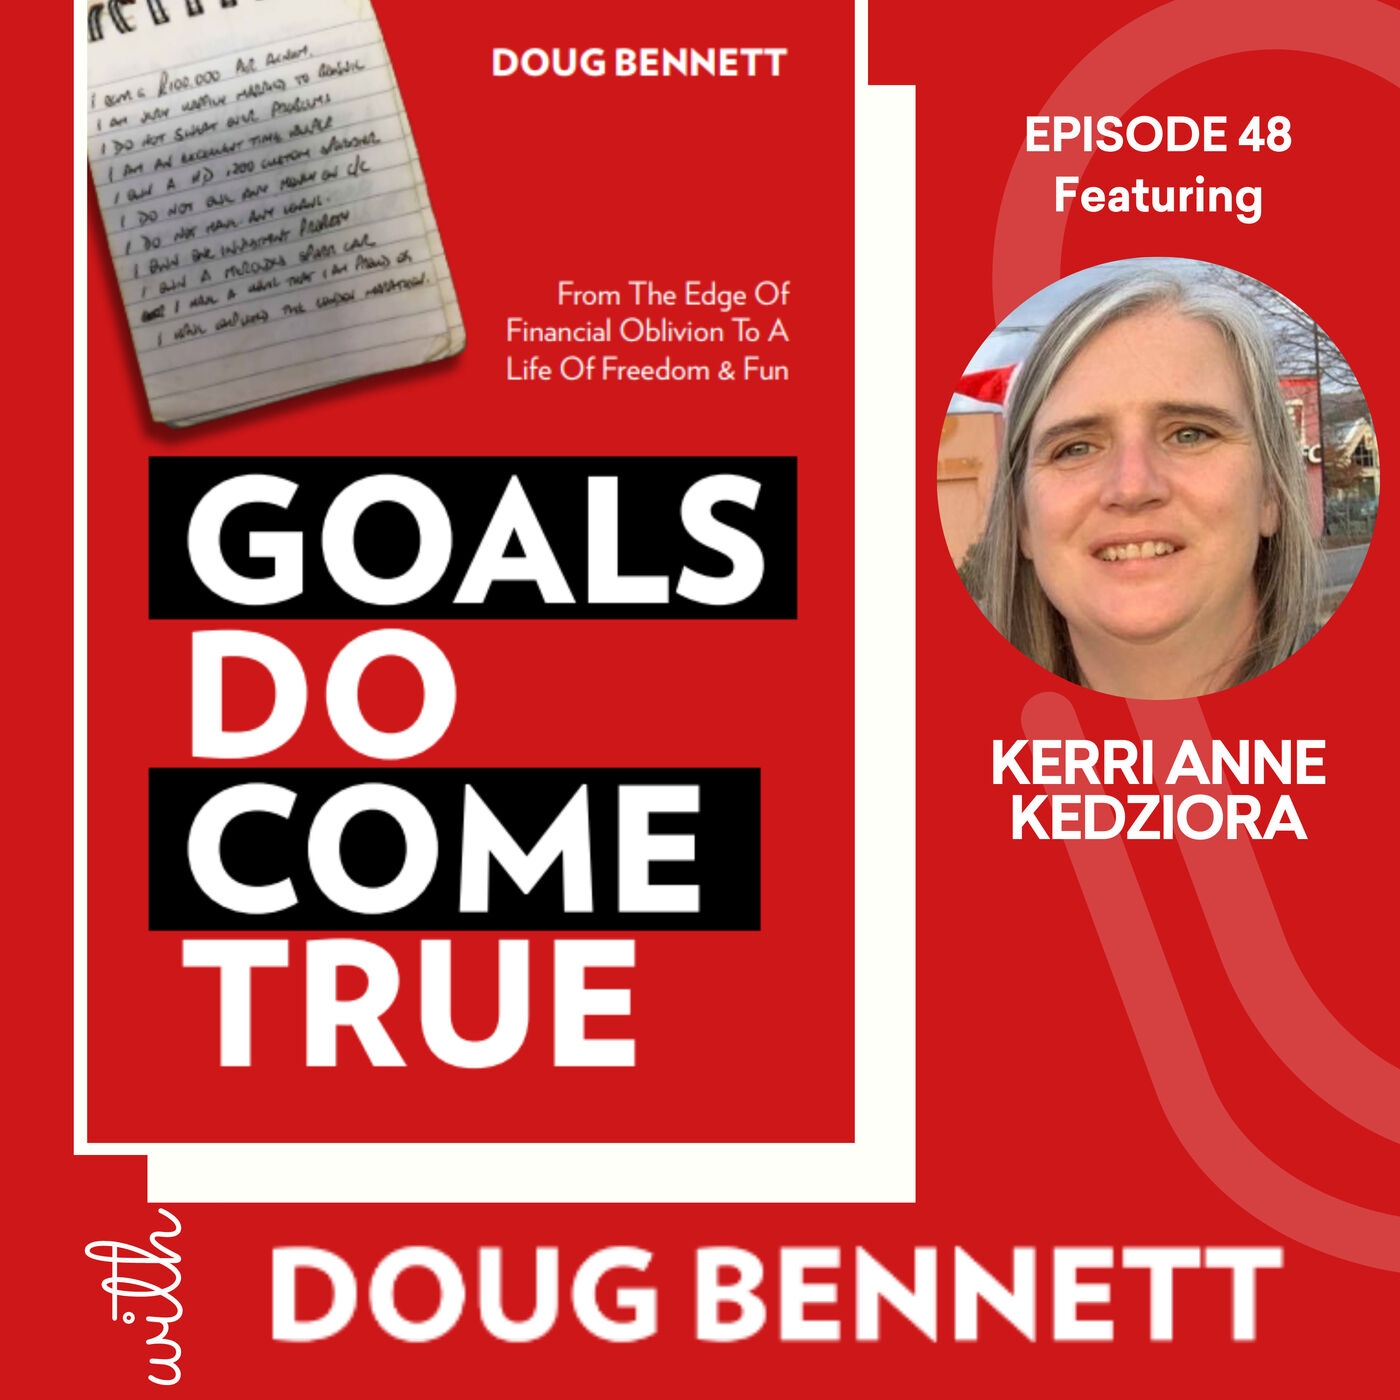 EP 48: How to Set Goals in Life And Achieve Your Dreams with Kerri Anne Kedziora